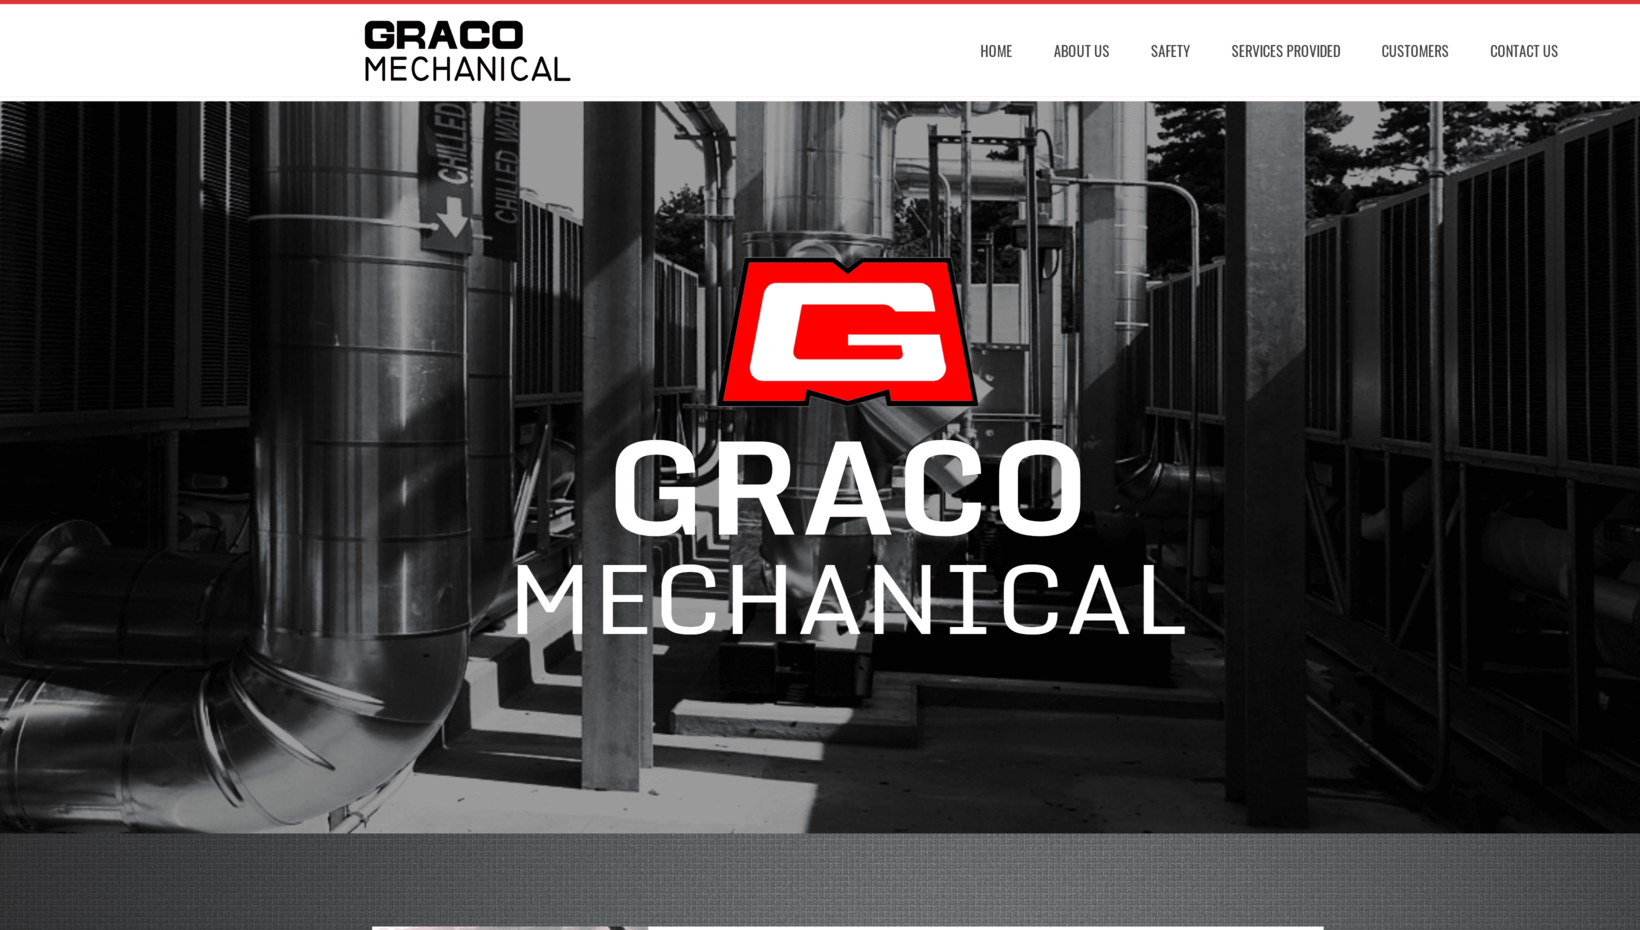 gracomechanical.com_